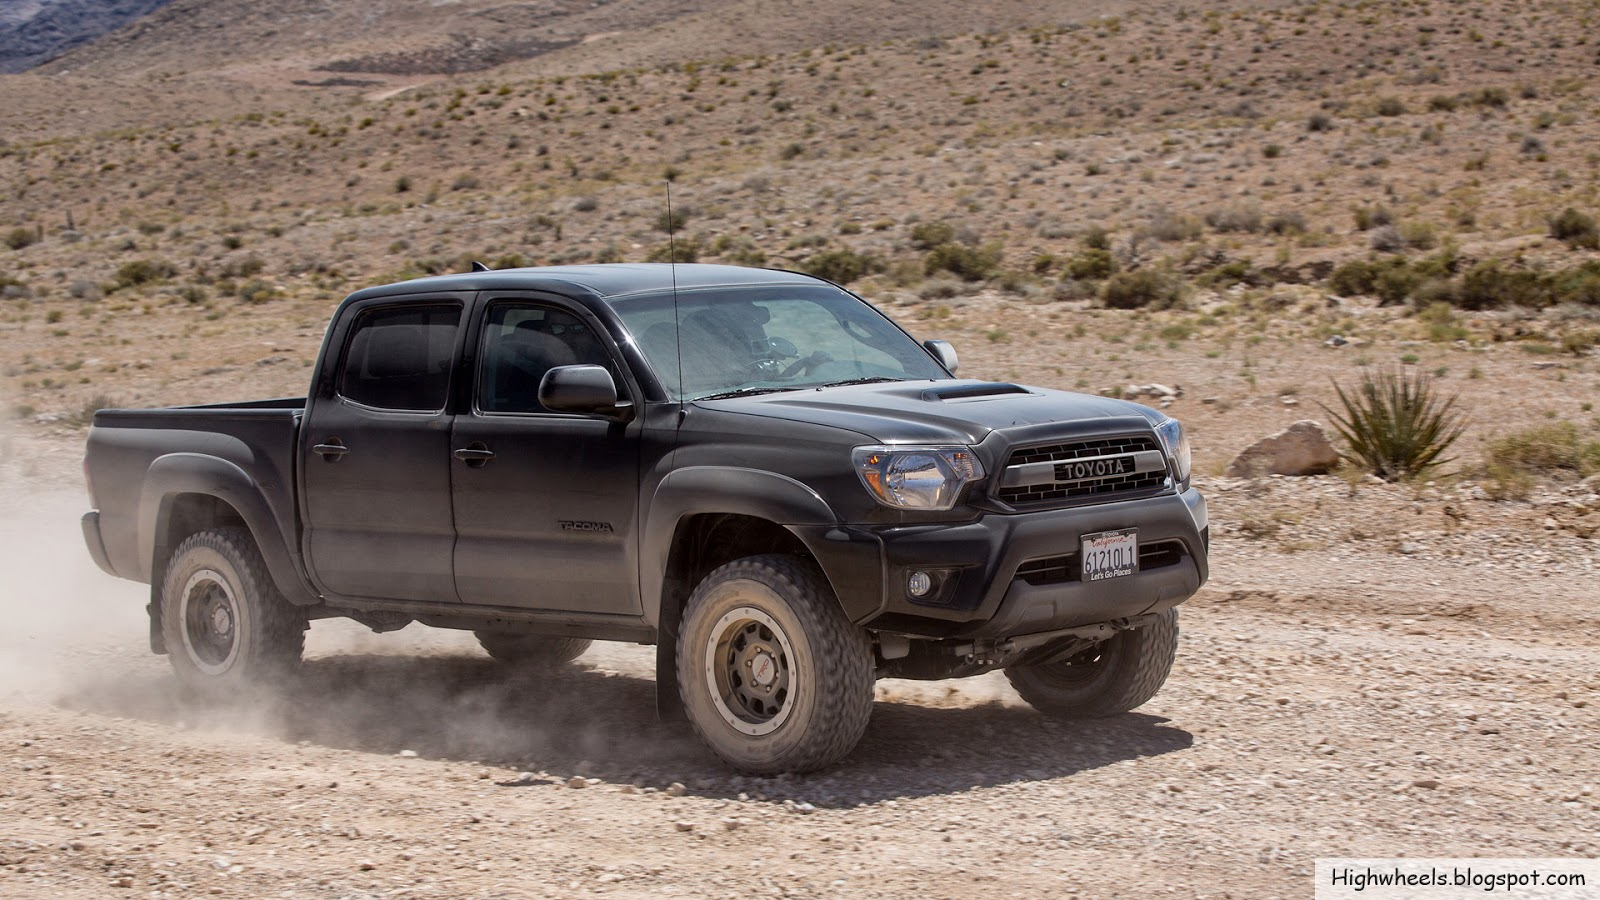 high wheels 2015 toyota tacoma trd pro series. Black Bedroom Furniture Sets. Home Design Ideas